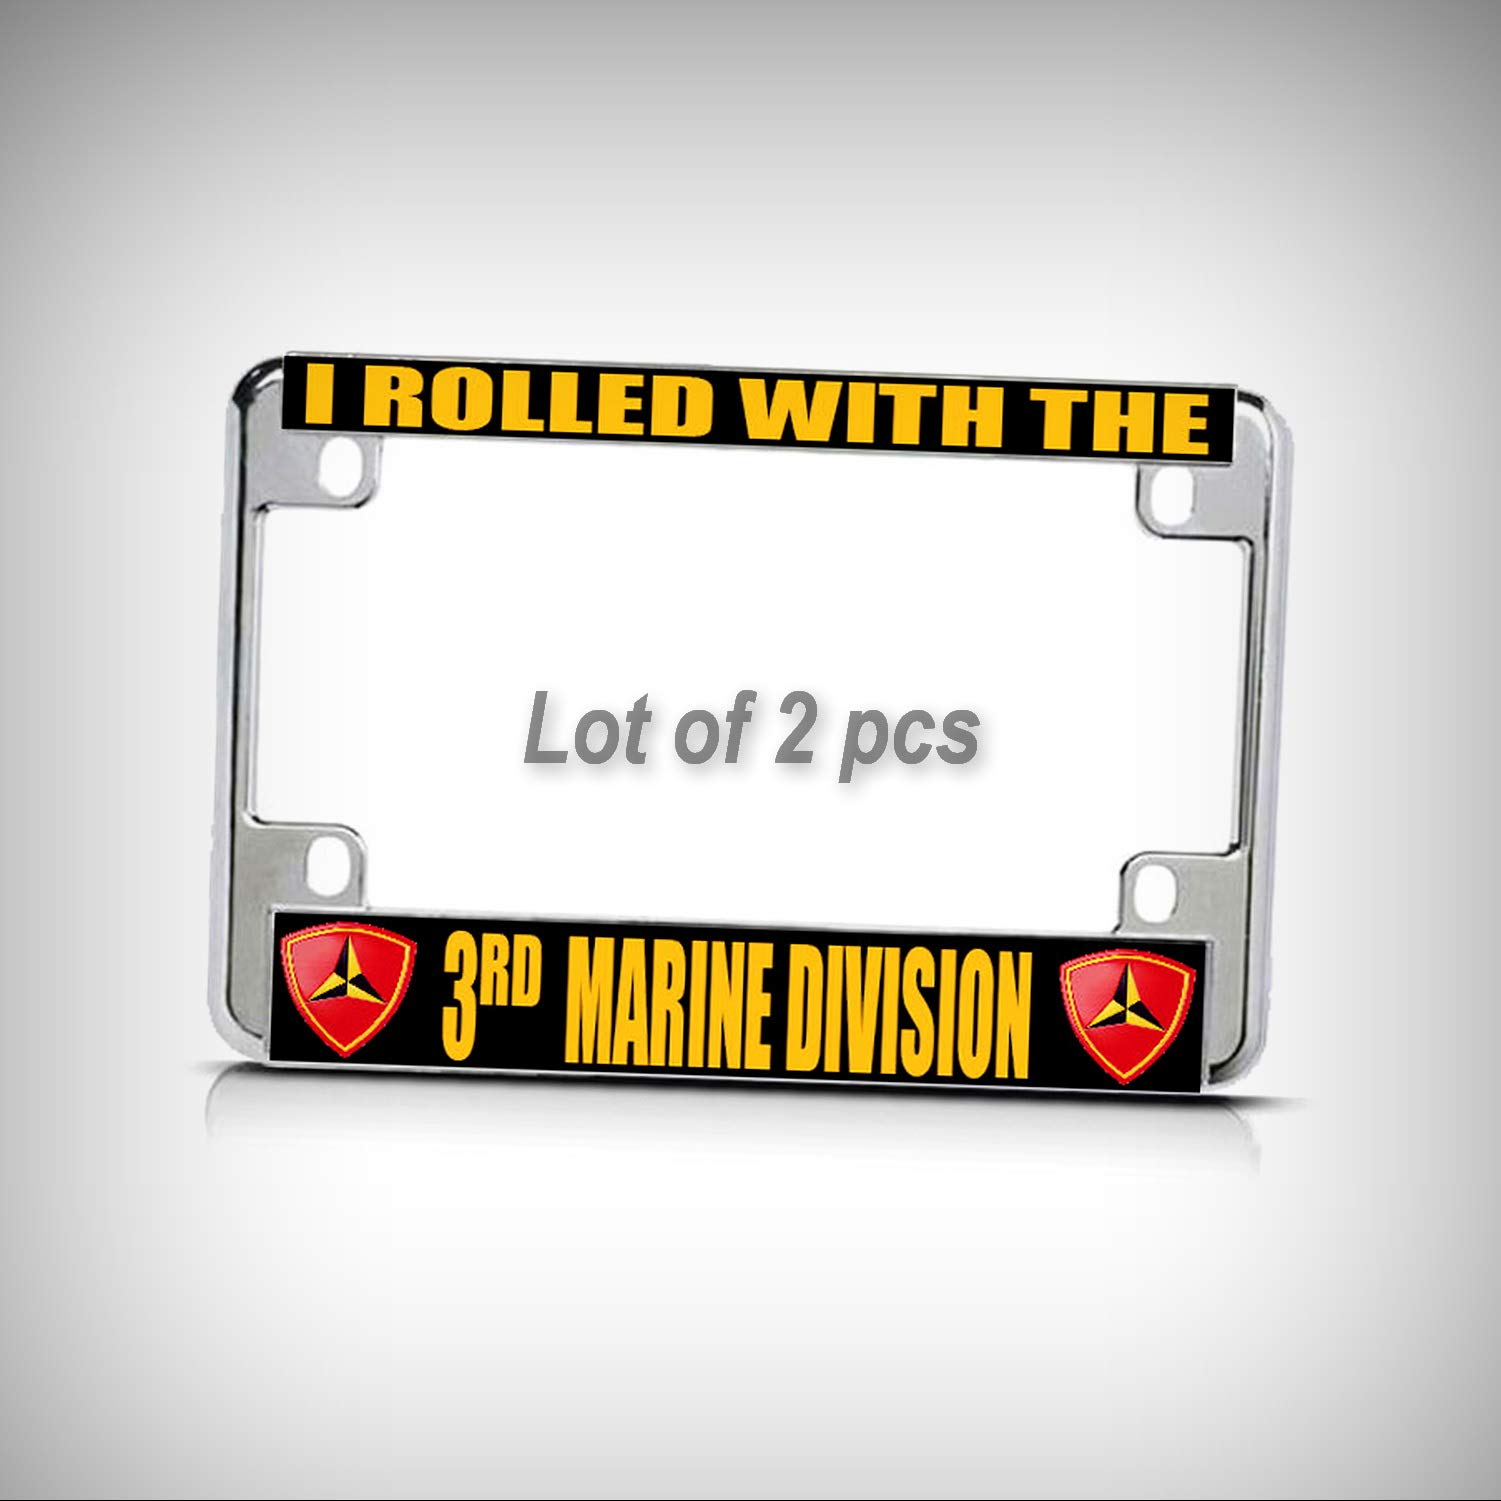 Set of 2 Pcs - I Rolled with 3RD Marine Division Chrome Metal Motorcycle Tag Holder License Plate Frame Decorative Border